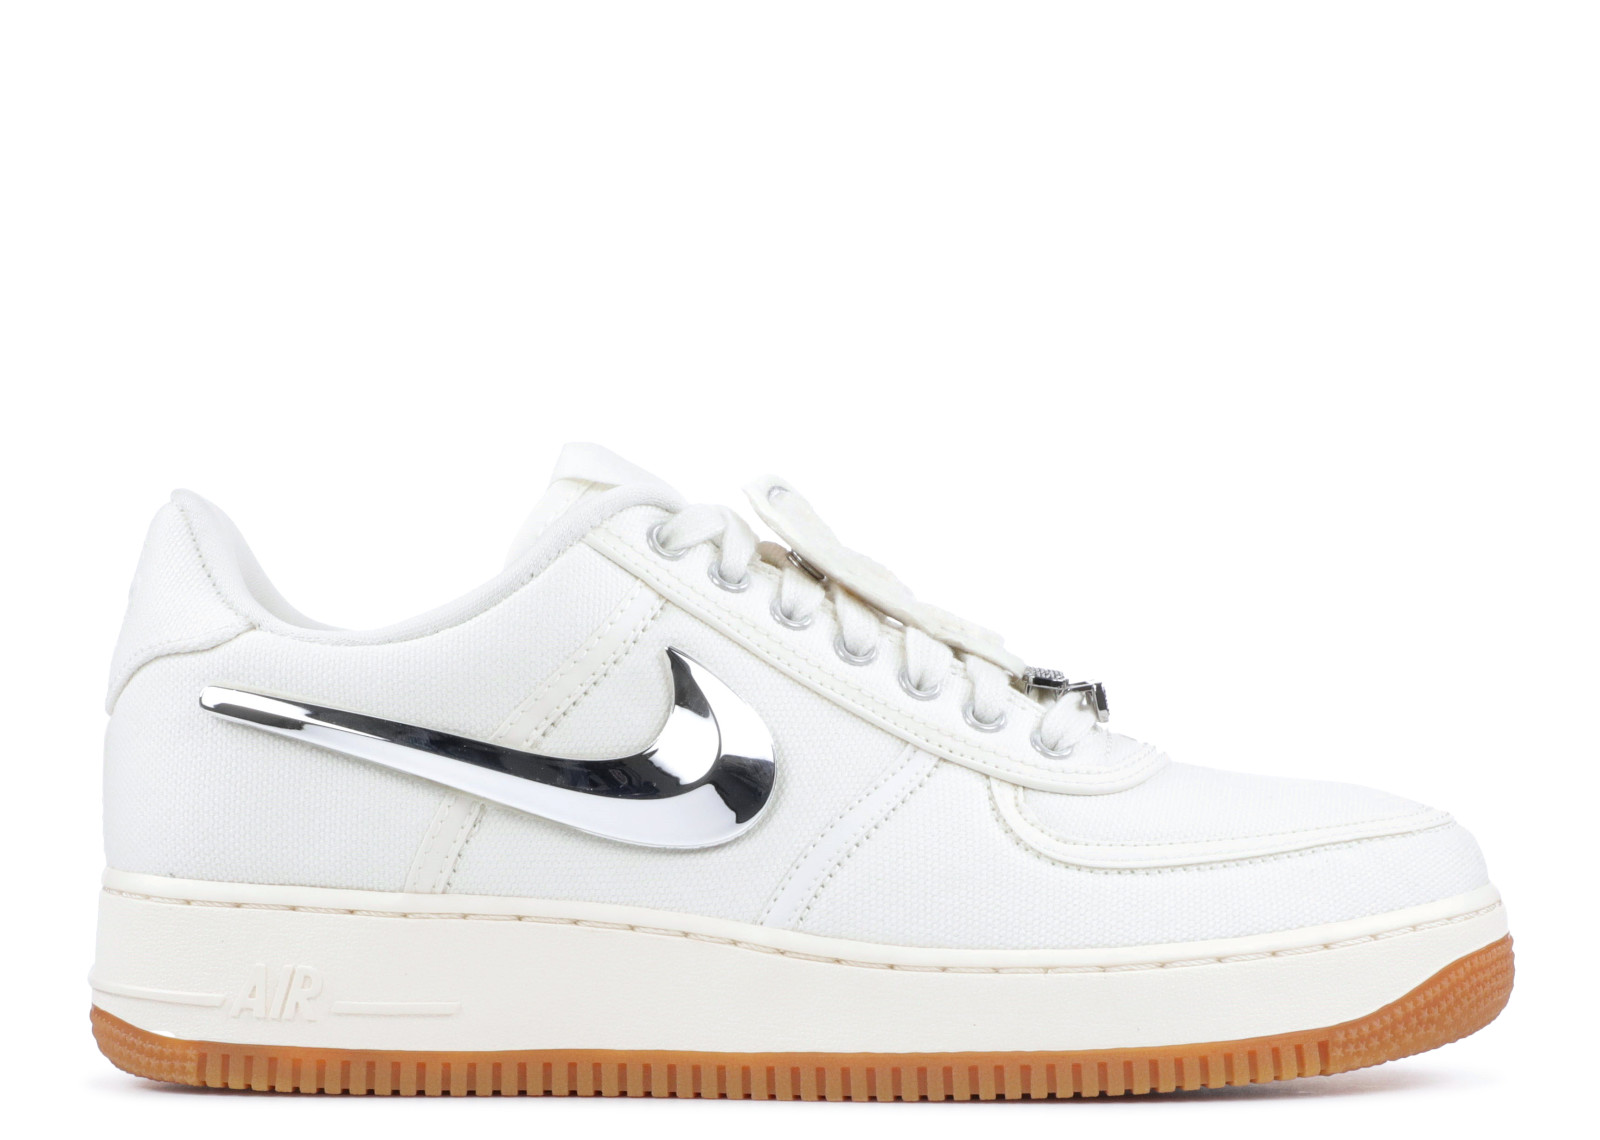 Airforce 1 Low Travis Scott Sail